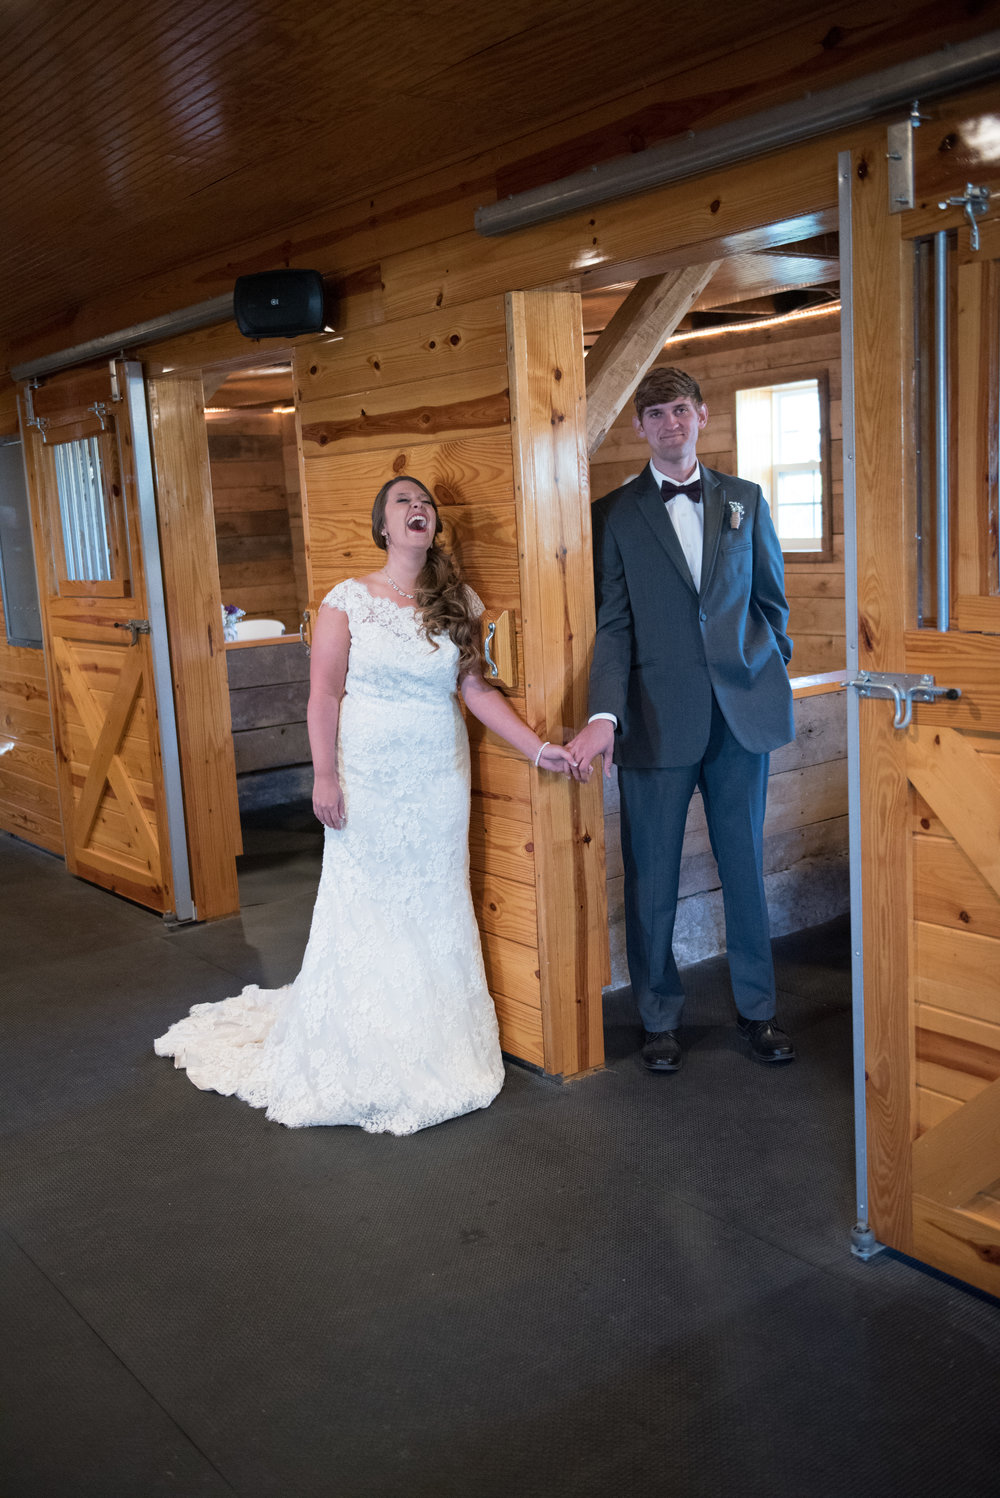 Letting out emotions is very helpful. The bride began to giggle then full on howled at how nervous the groom was. Both felt better and thanked us for suggesting First Look. They actually had fun during their ceremony.